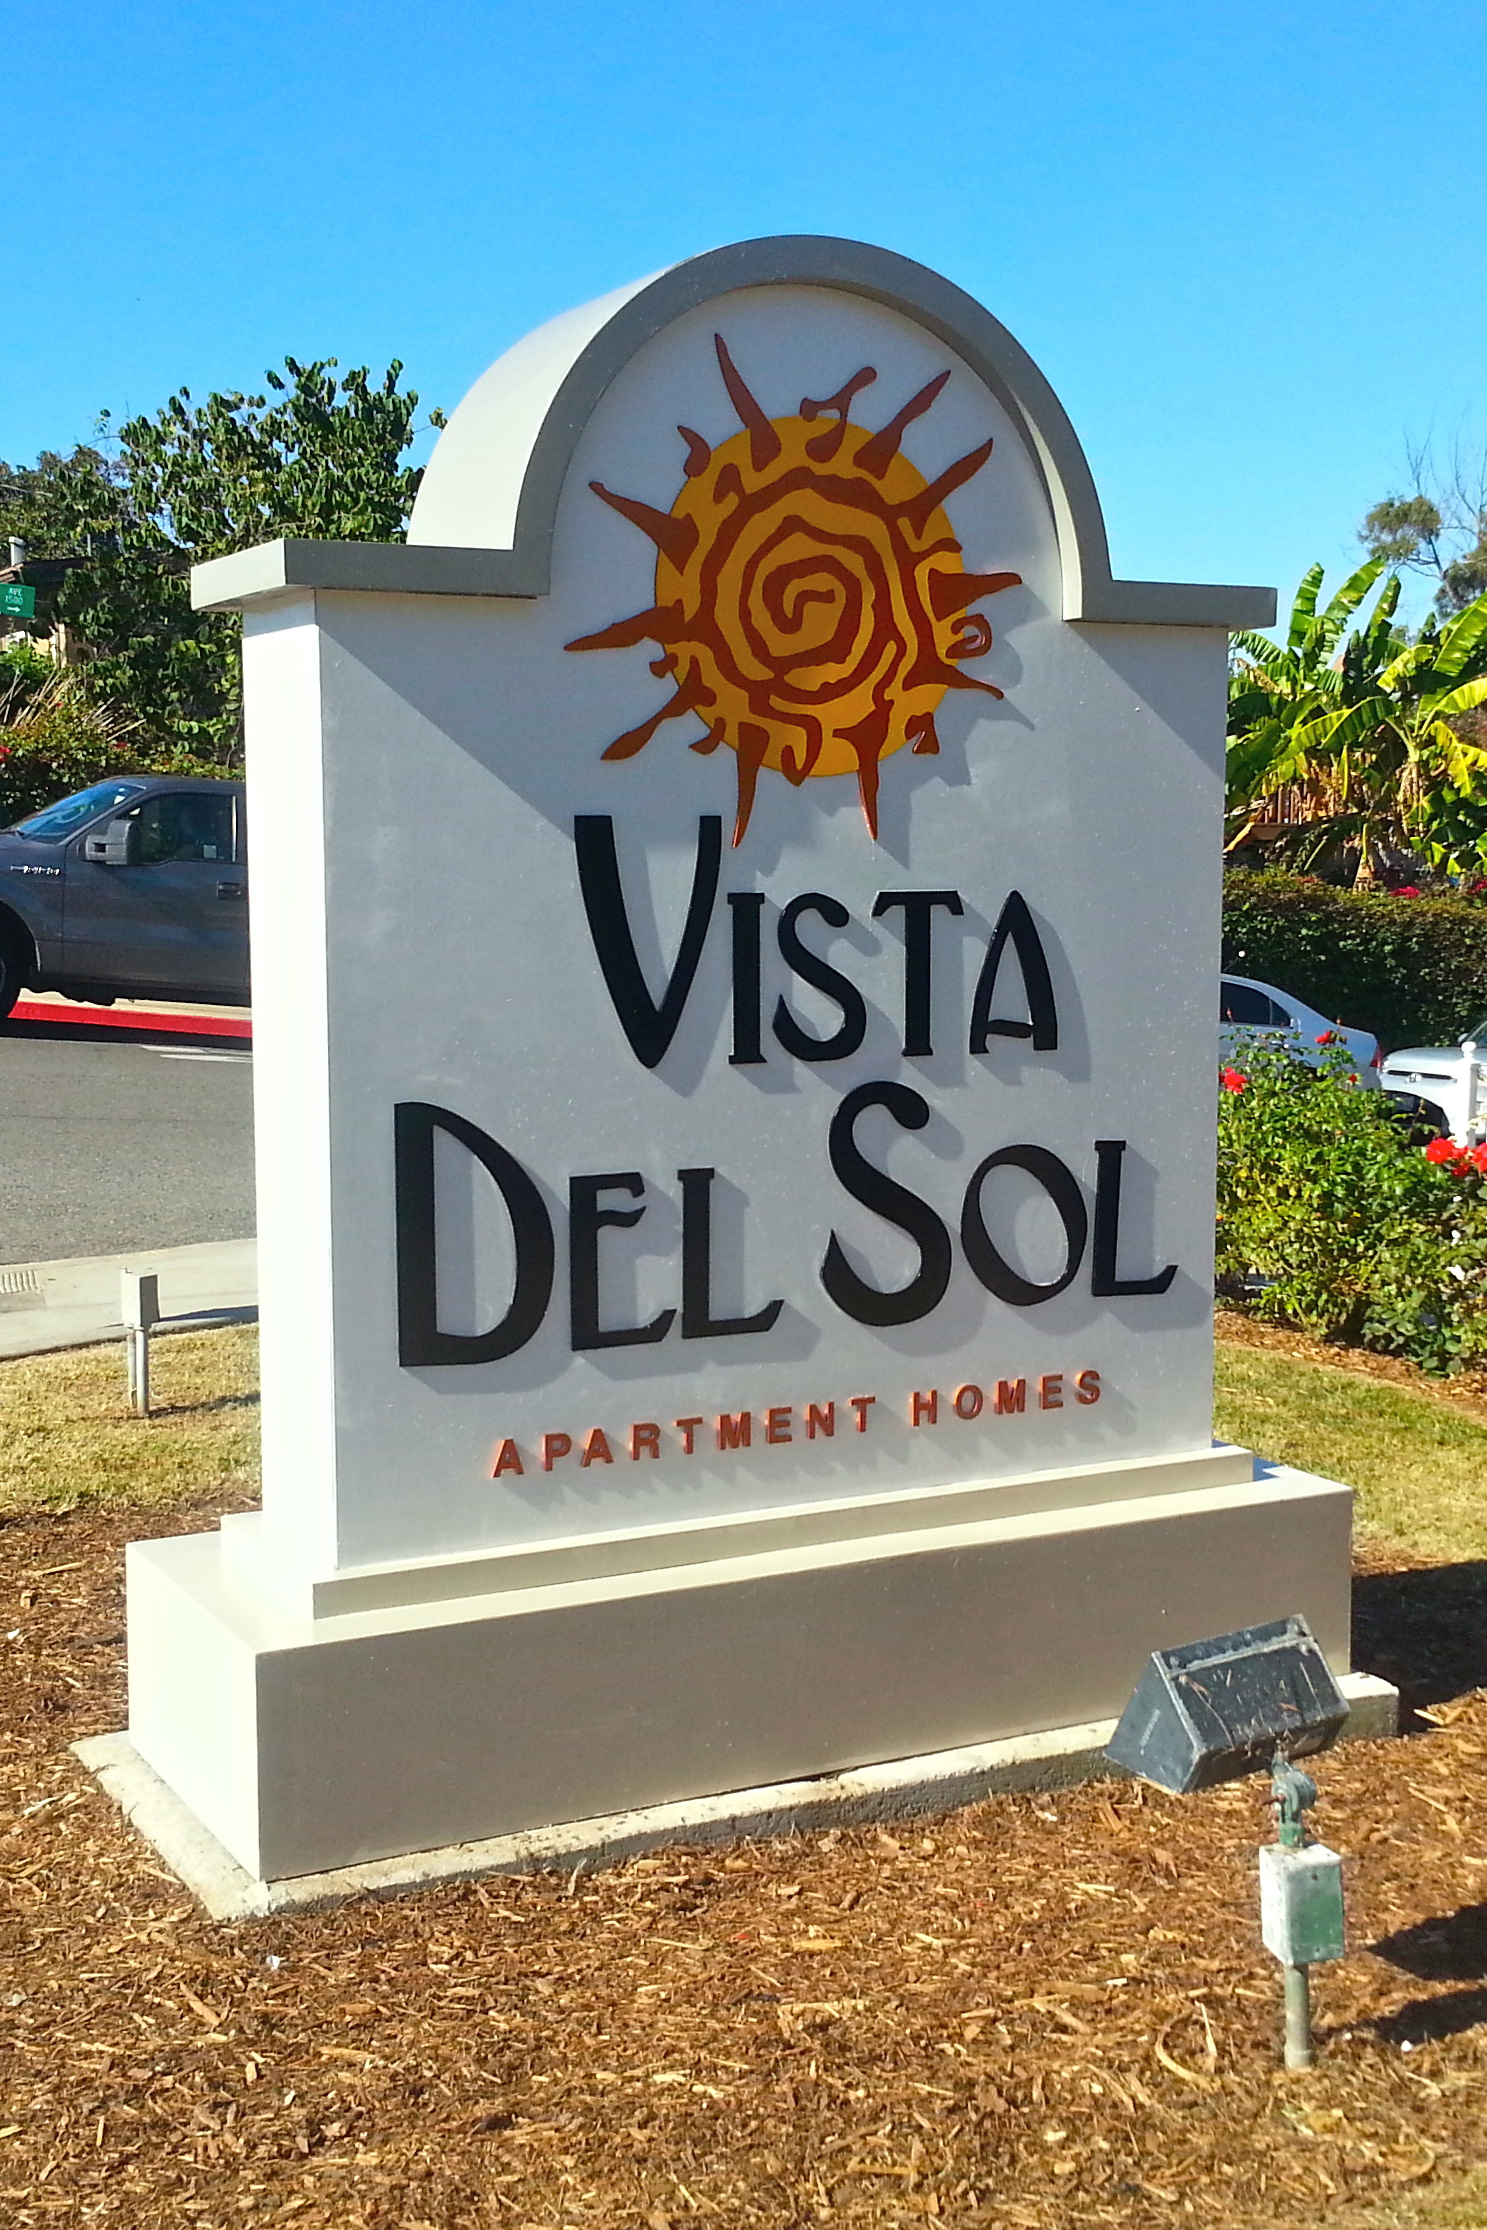 Vista Del Sol monument sign